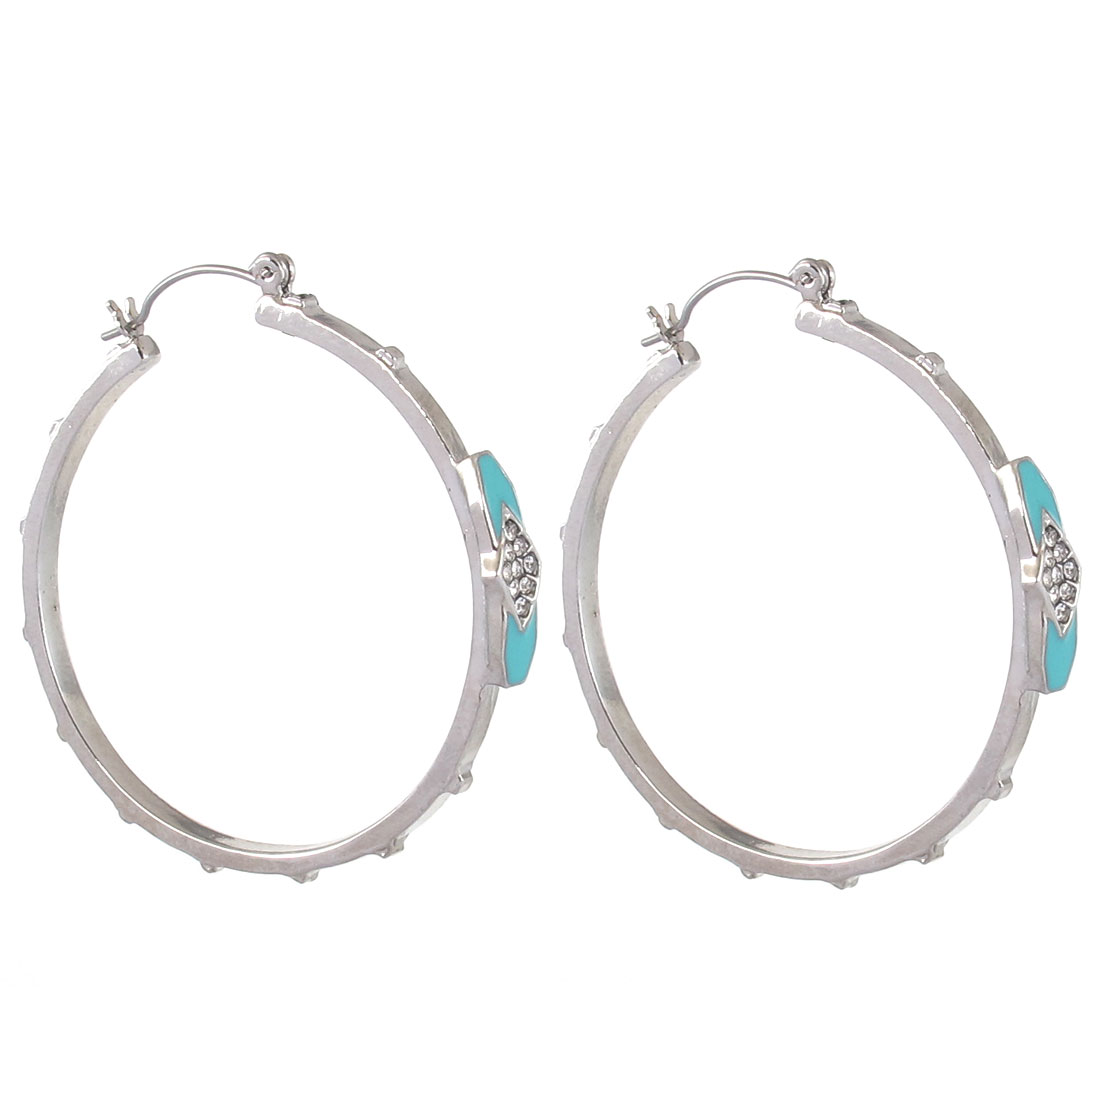 "1.8"" Dia Silver Tone Light Blue Faux Faceted Crystal Inlaid Stylish Edge Textured Metal Circle Hoop Pierced Earrings Pair for Lady Women"